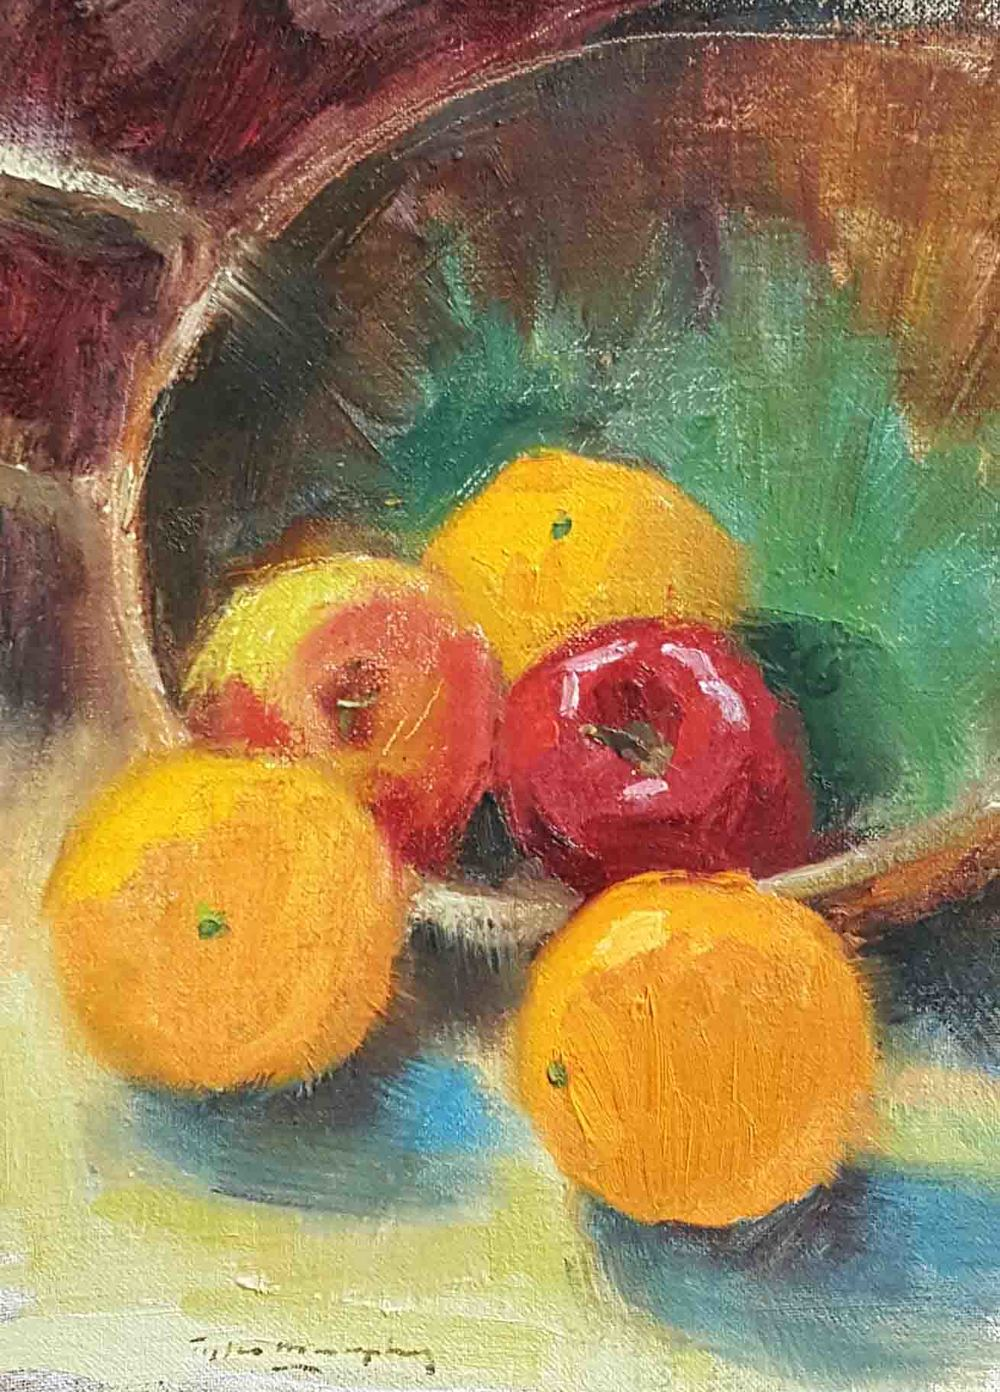 Apples and Oranges 9x12.jpg